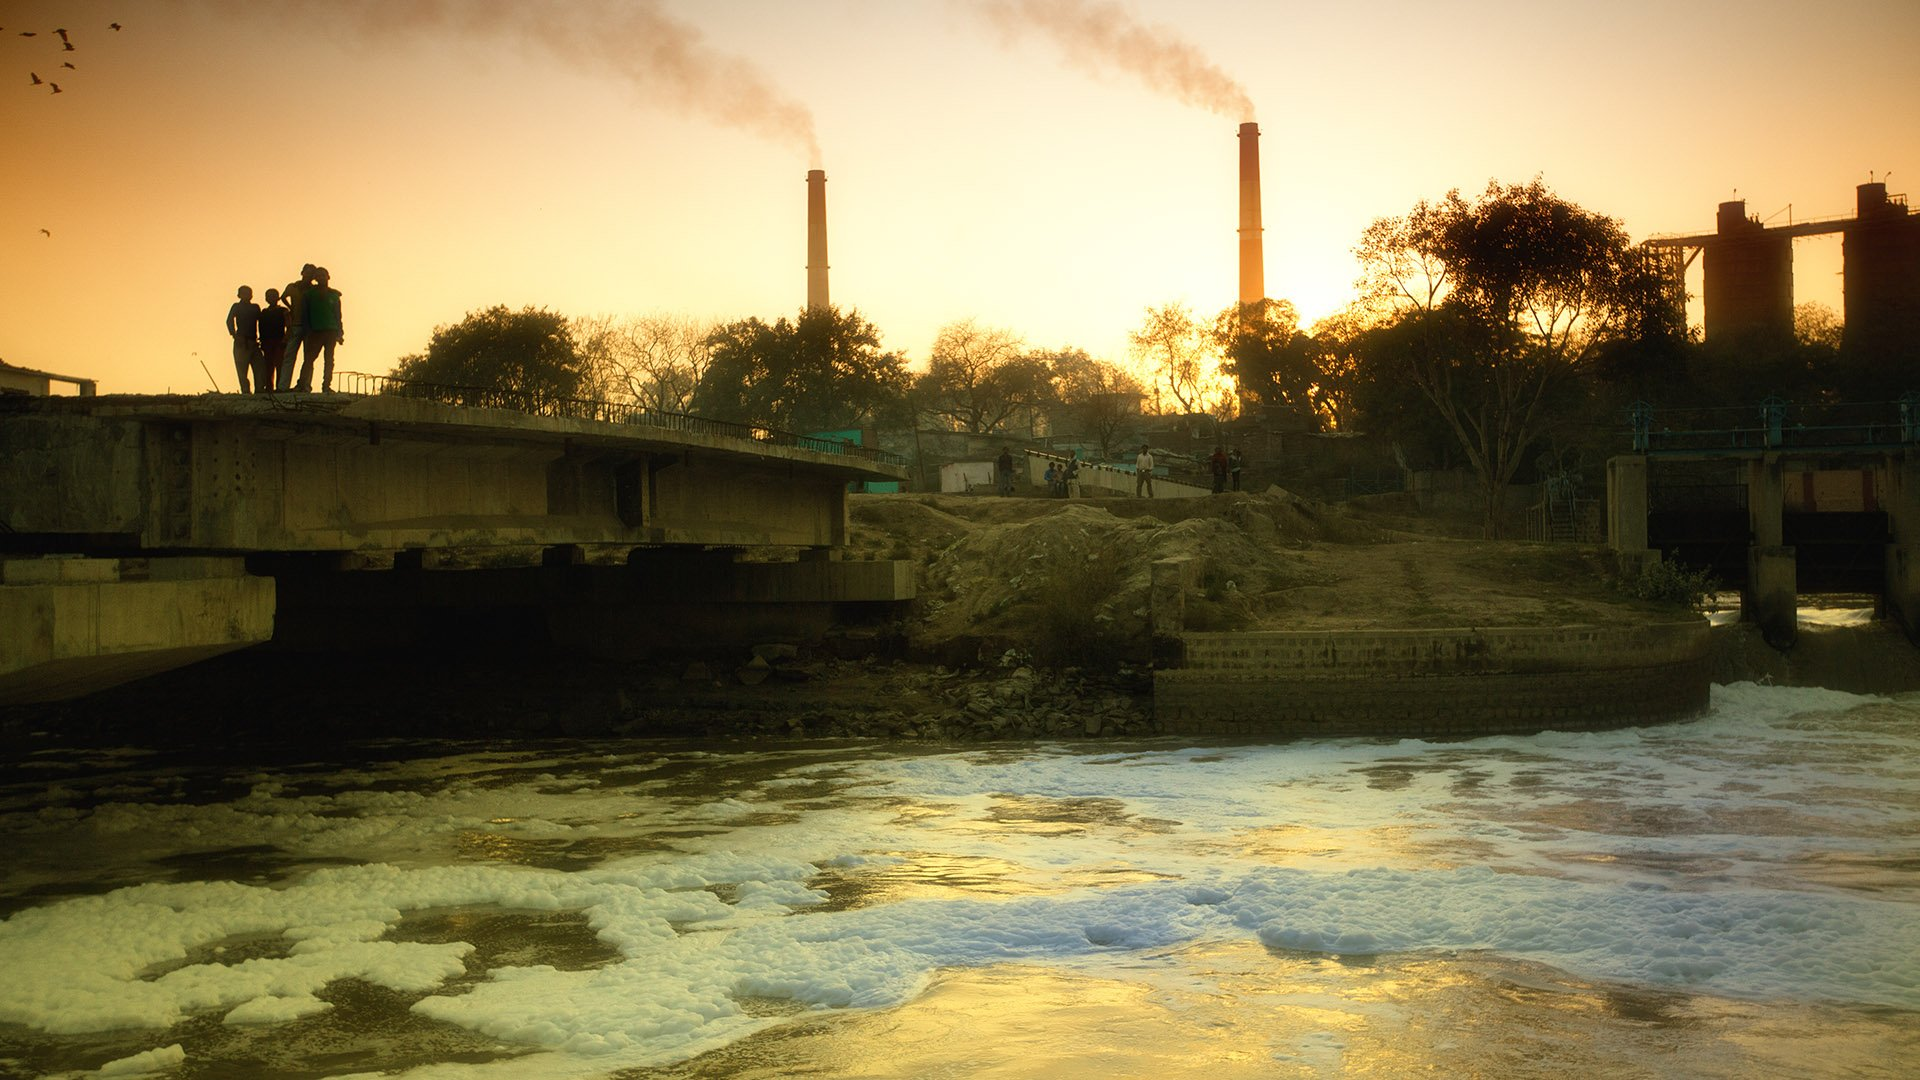 http://spatulamedia.ca/wp-content/uploads/2019/05/polluted-ganges-river.jpg